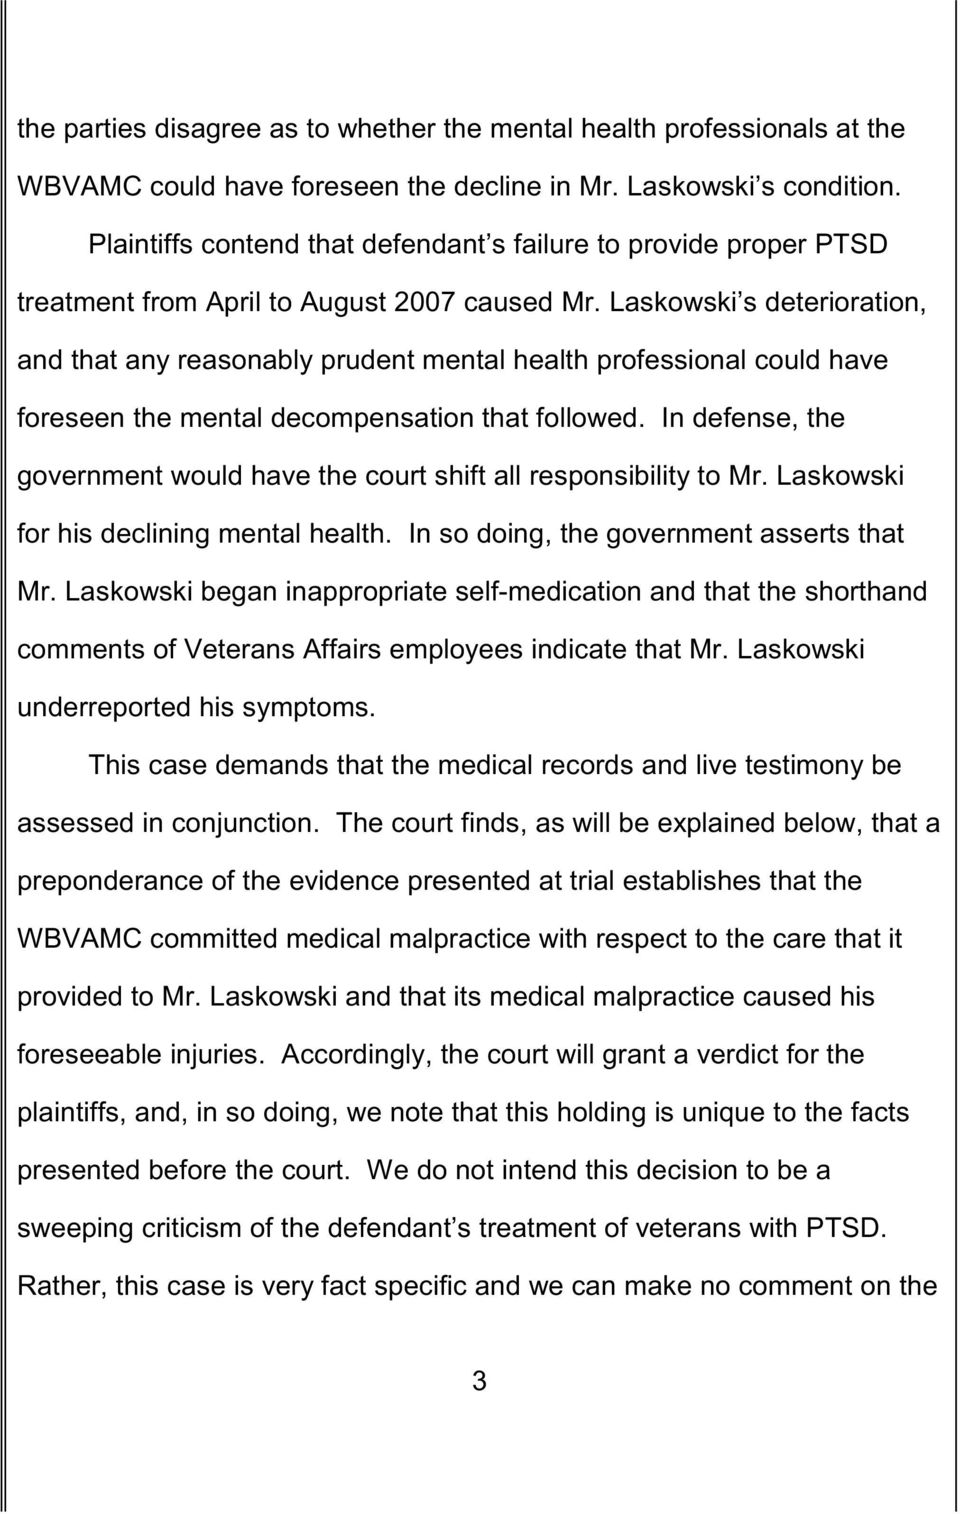 Laskowski s deterioration, and that any reasonably prudent mental health professional could have foreseen the mental decompensation that followed.